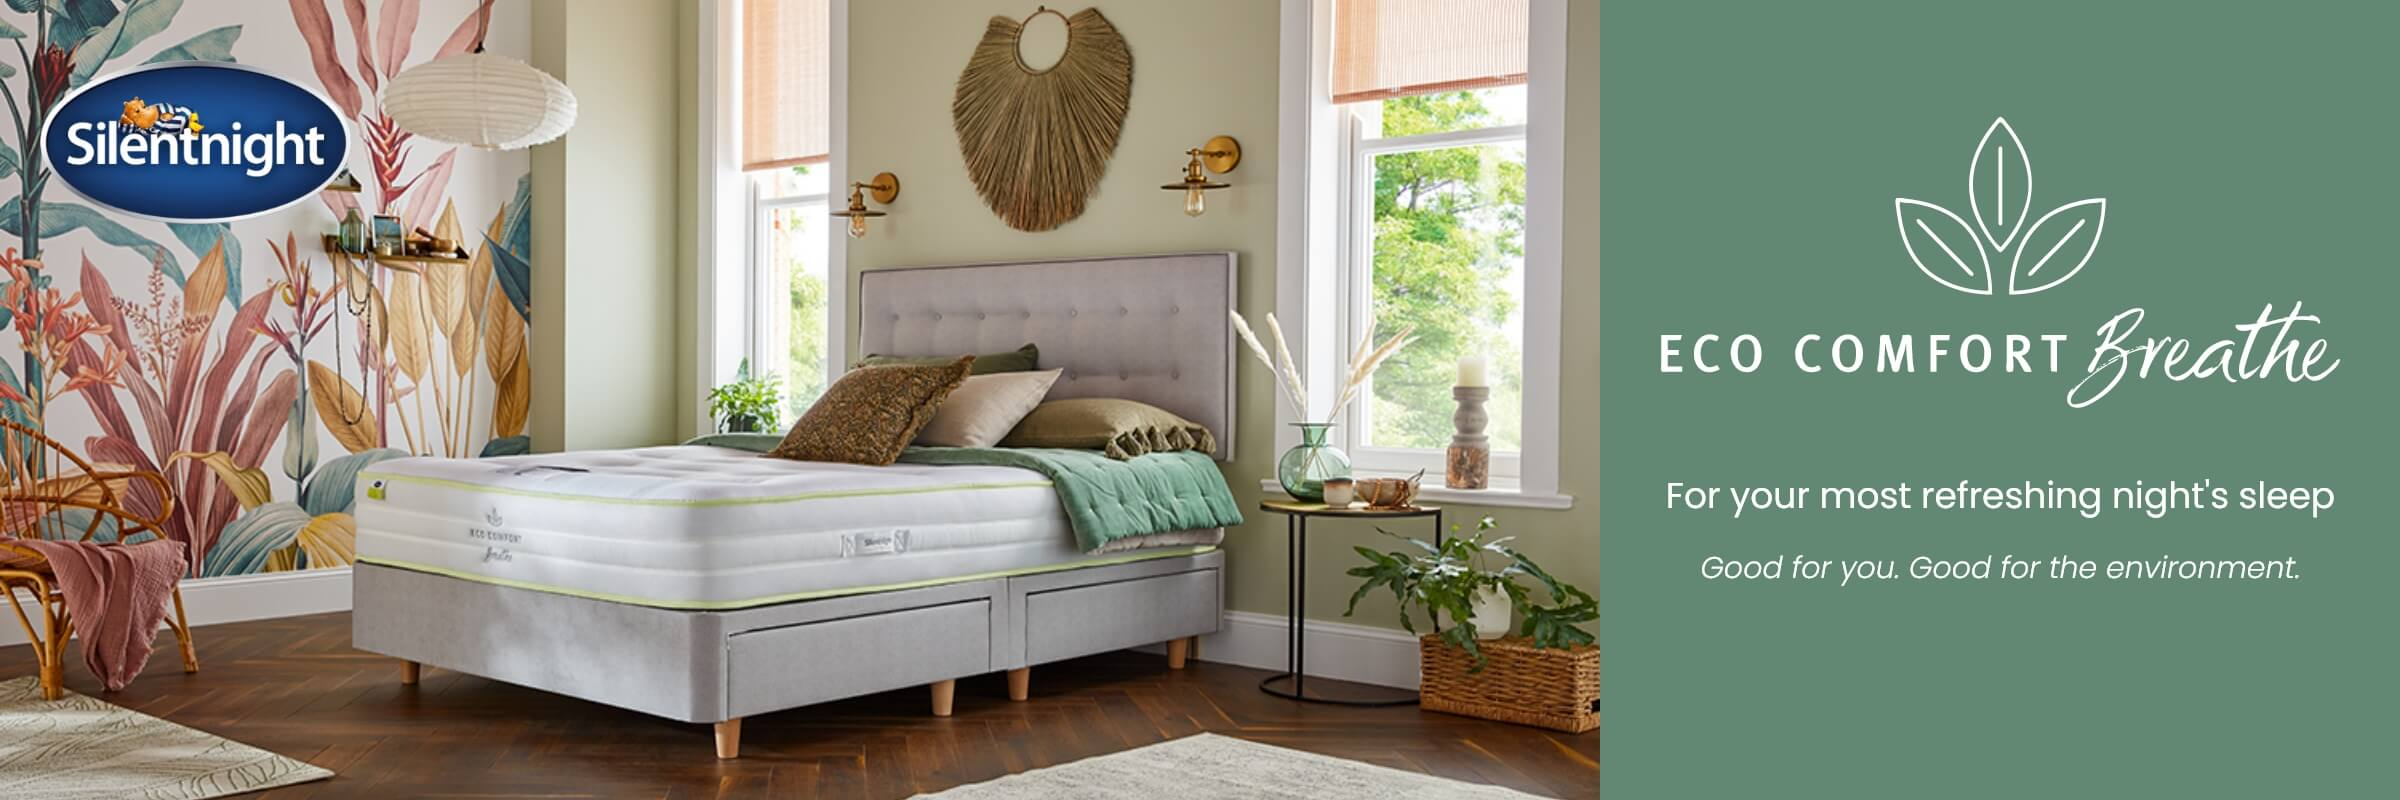 Eco Comfort Breathe Mattresses at MattressOnline